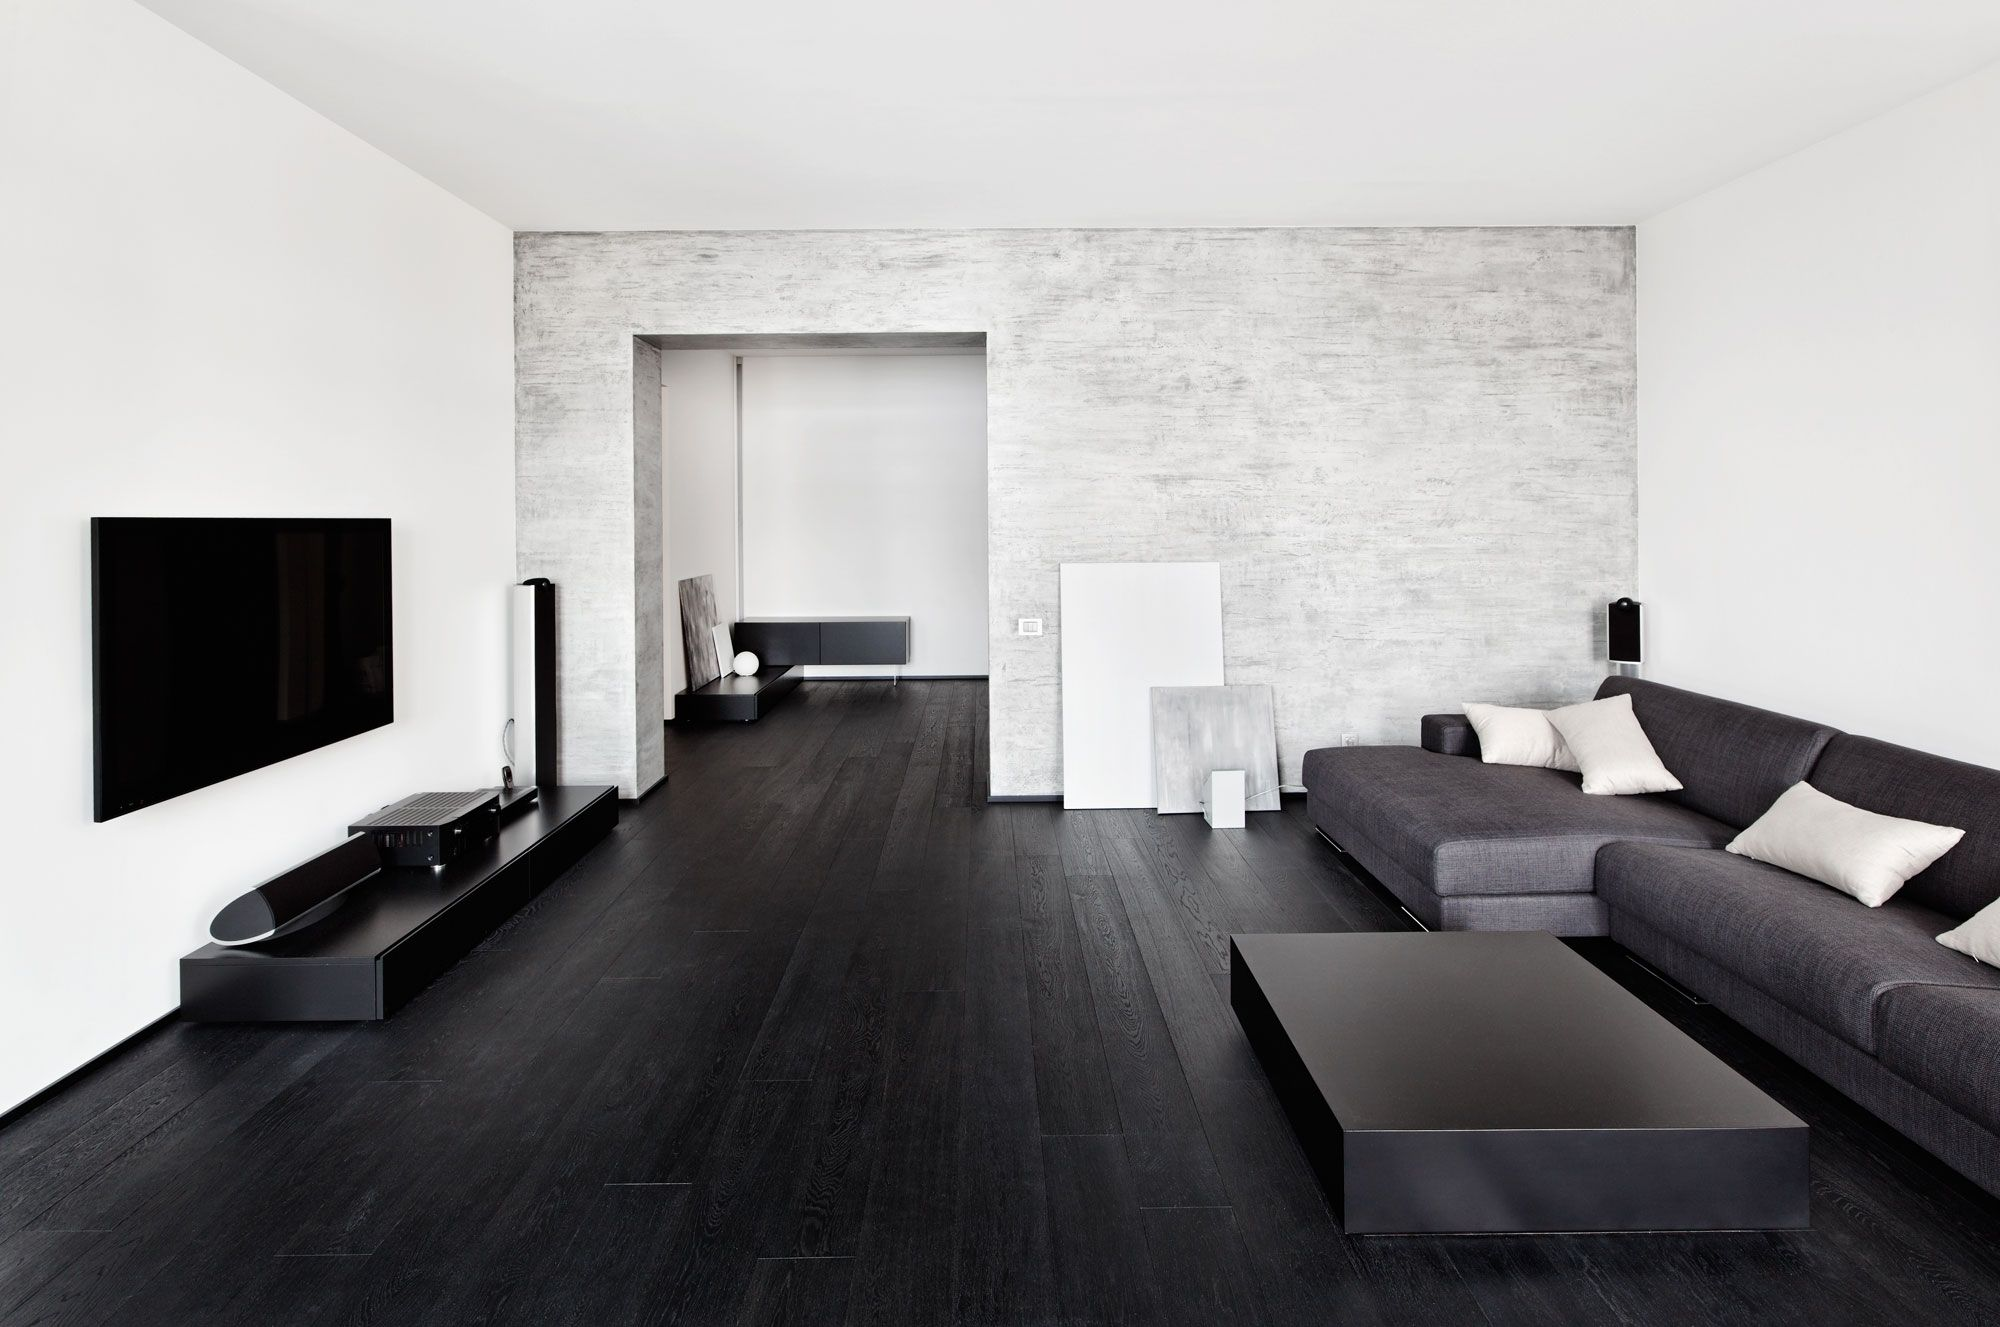 Black Wooden Floors Wooden Floo Black Wood Floors White Walls Dark Wood Floors Living Room Simple Living Room Designs Living Room Wood Floor